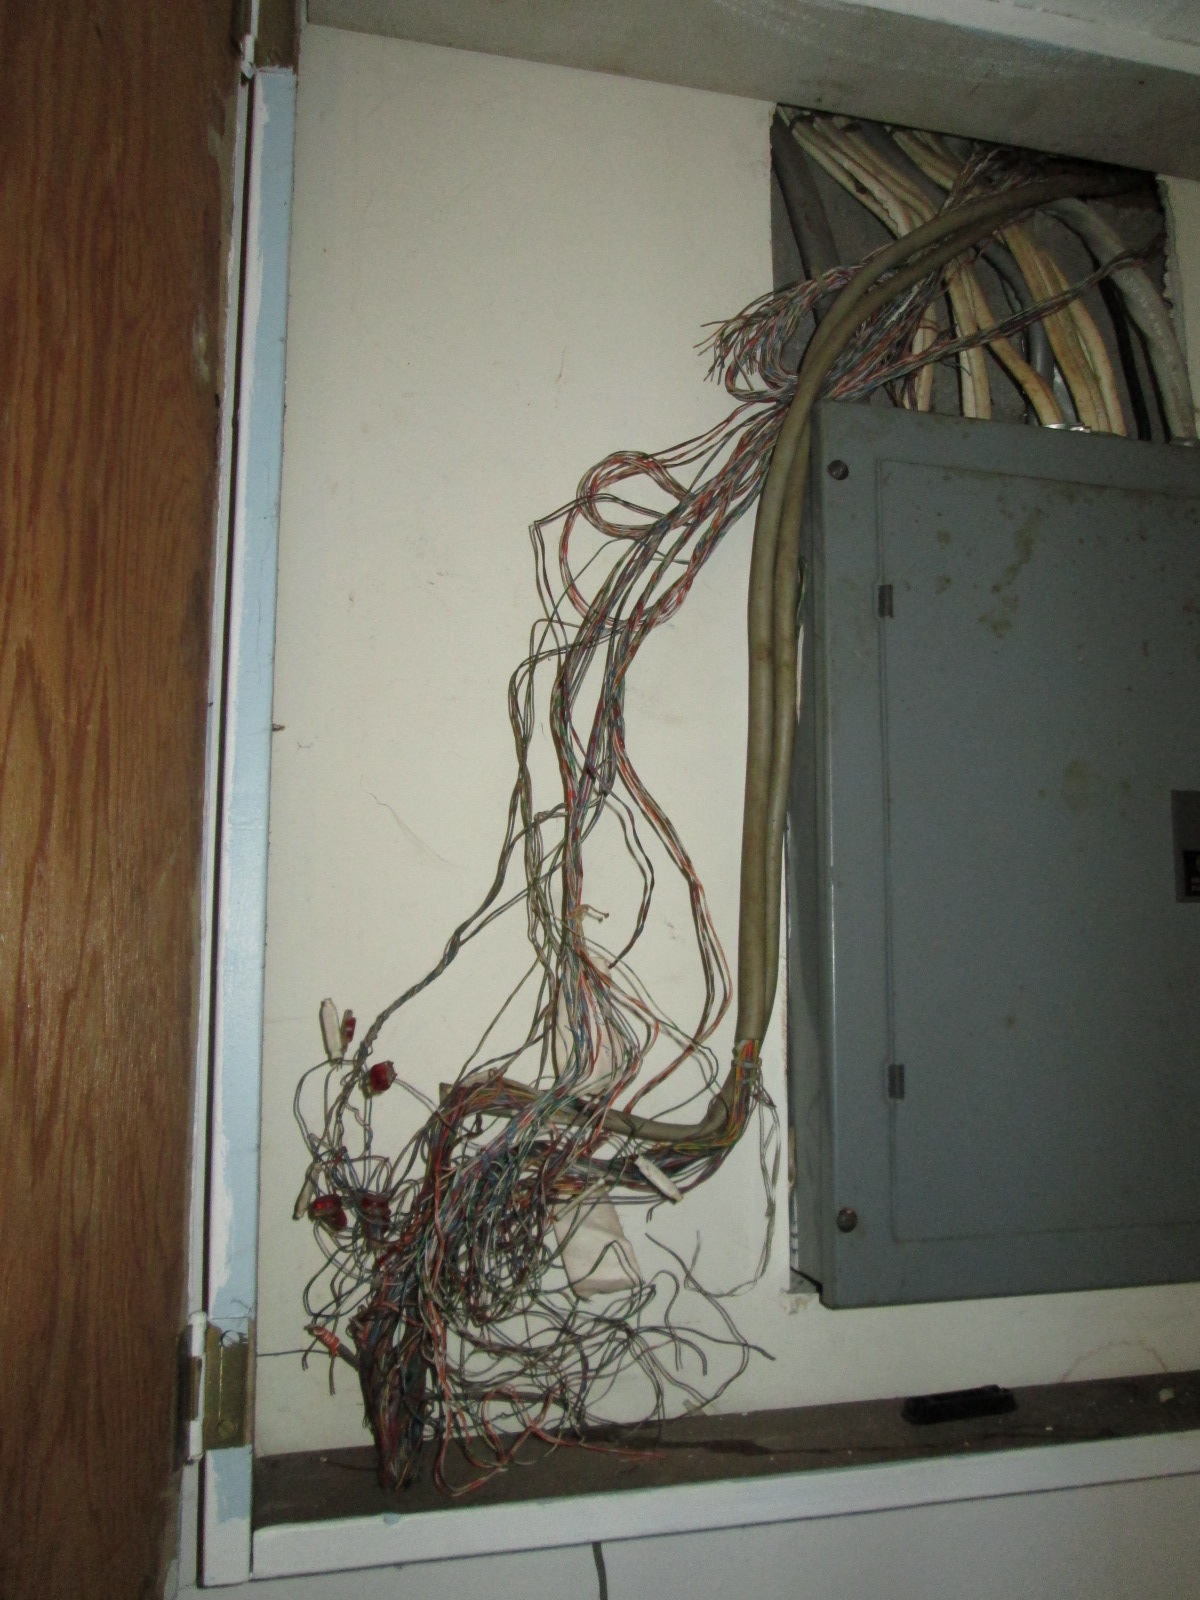 How Easy Difficult To Replace Internal Phone Wiring Verizon Fios Home Media Box Community